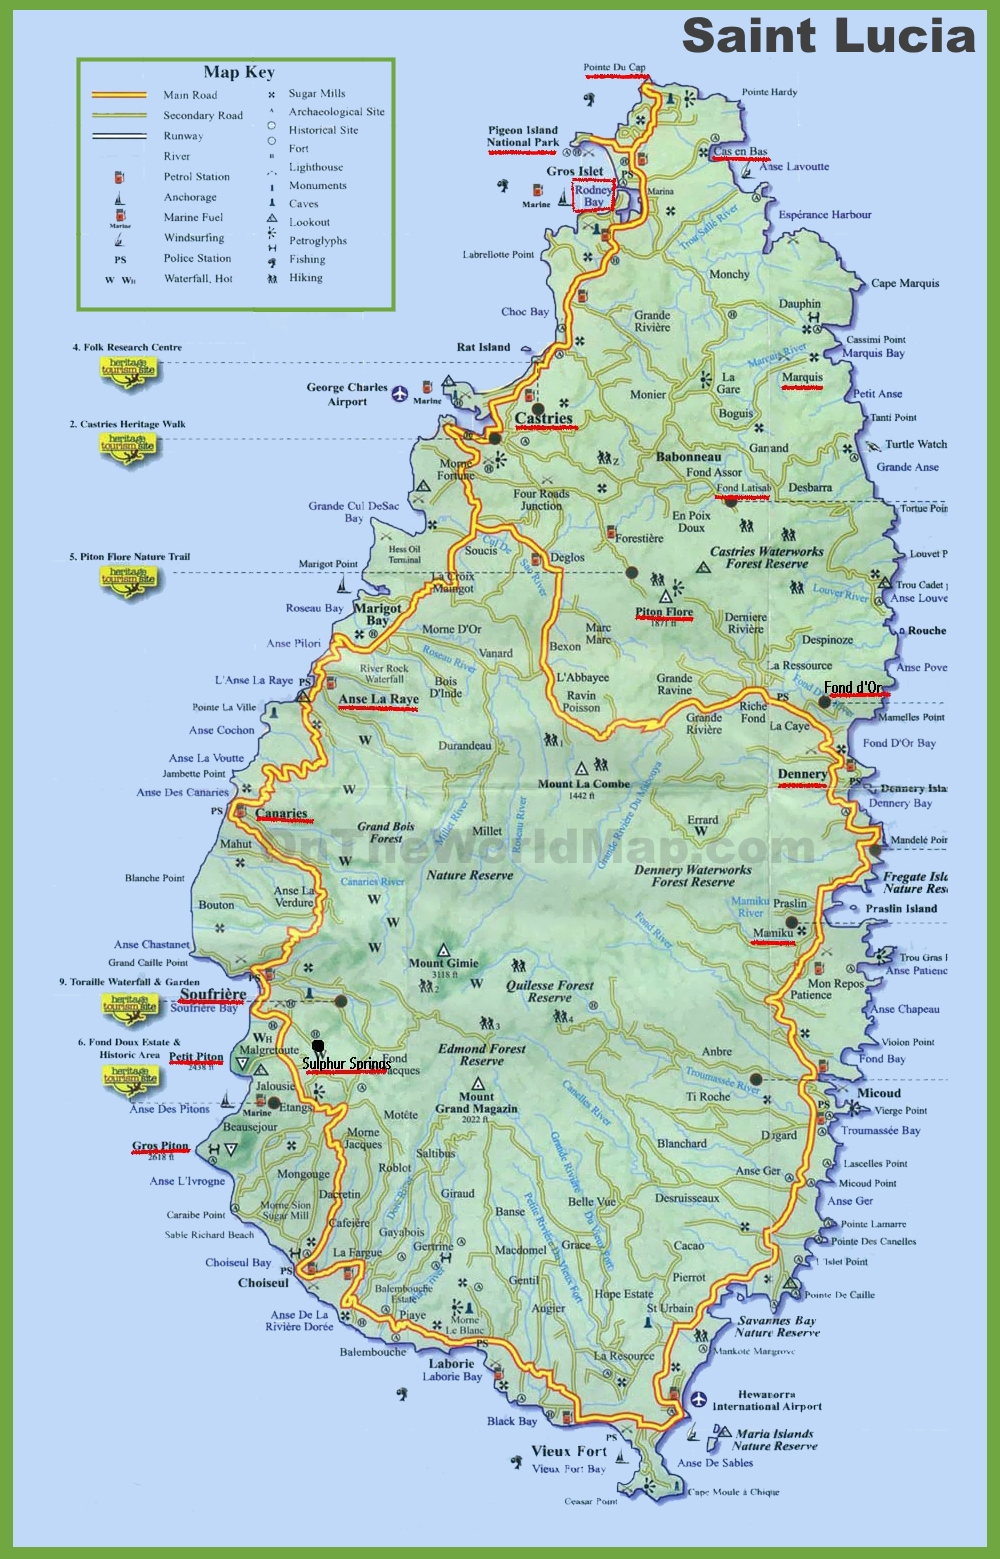 Saint Lucia Island Maps Maps Of Saint Lucia - Saint lucia map